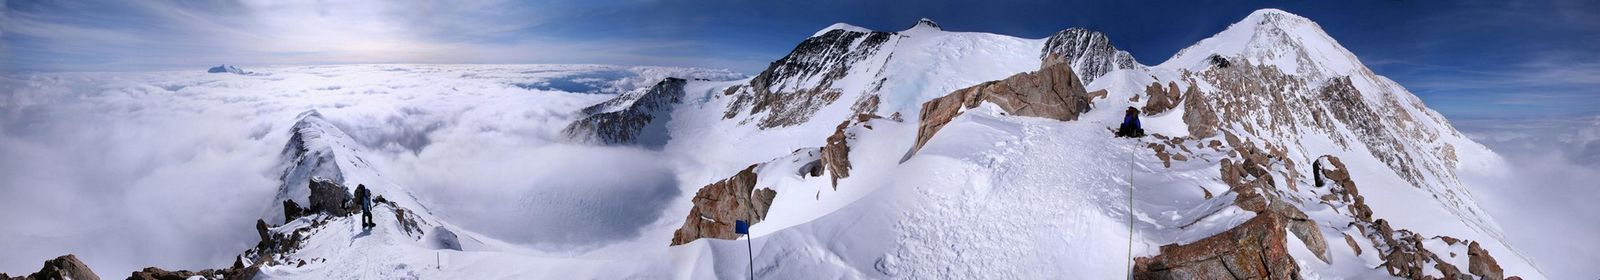 Mountaineering team ascending the West Buttress ridge of Denali, Alaska. The team is just above Washburns Thumb, at 16,800 ft...